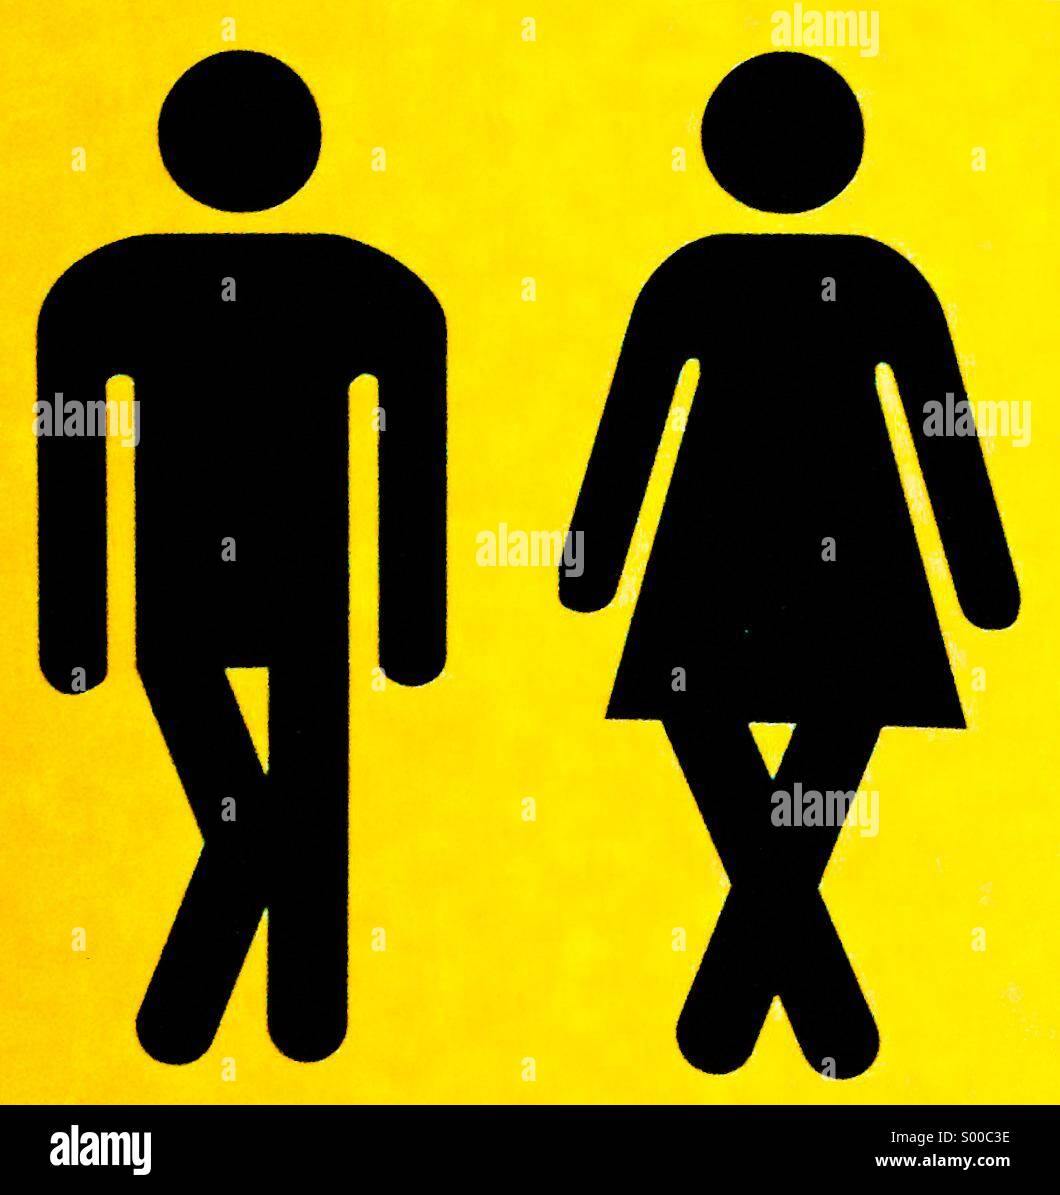 A sign showing a man and a woman with crossed legs. - Stock Image